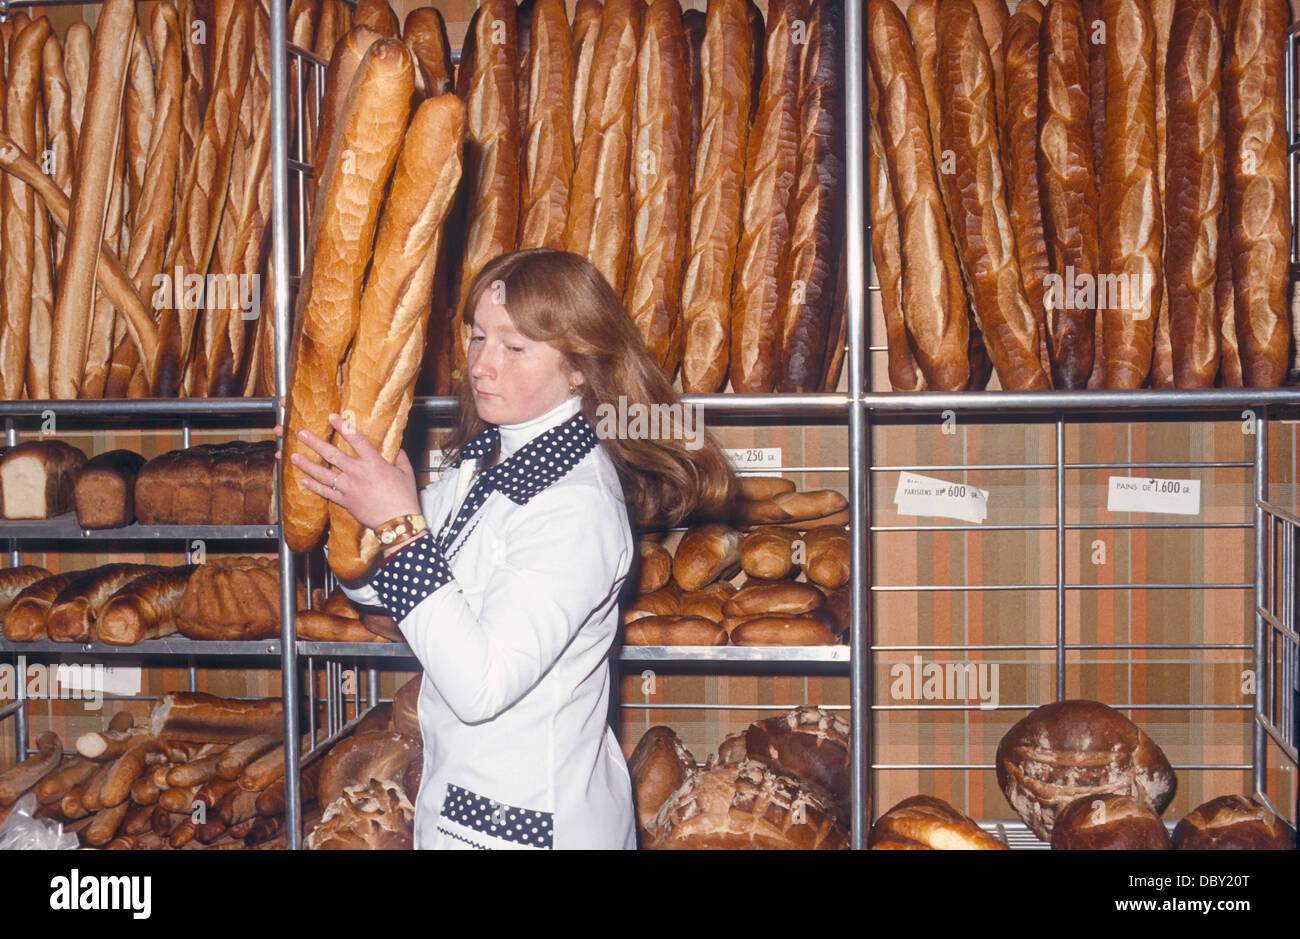 Behind the counter at a boulangerie in the French Alps. A variety of bread products. Stock Photo